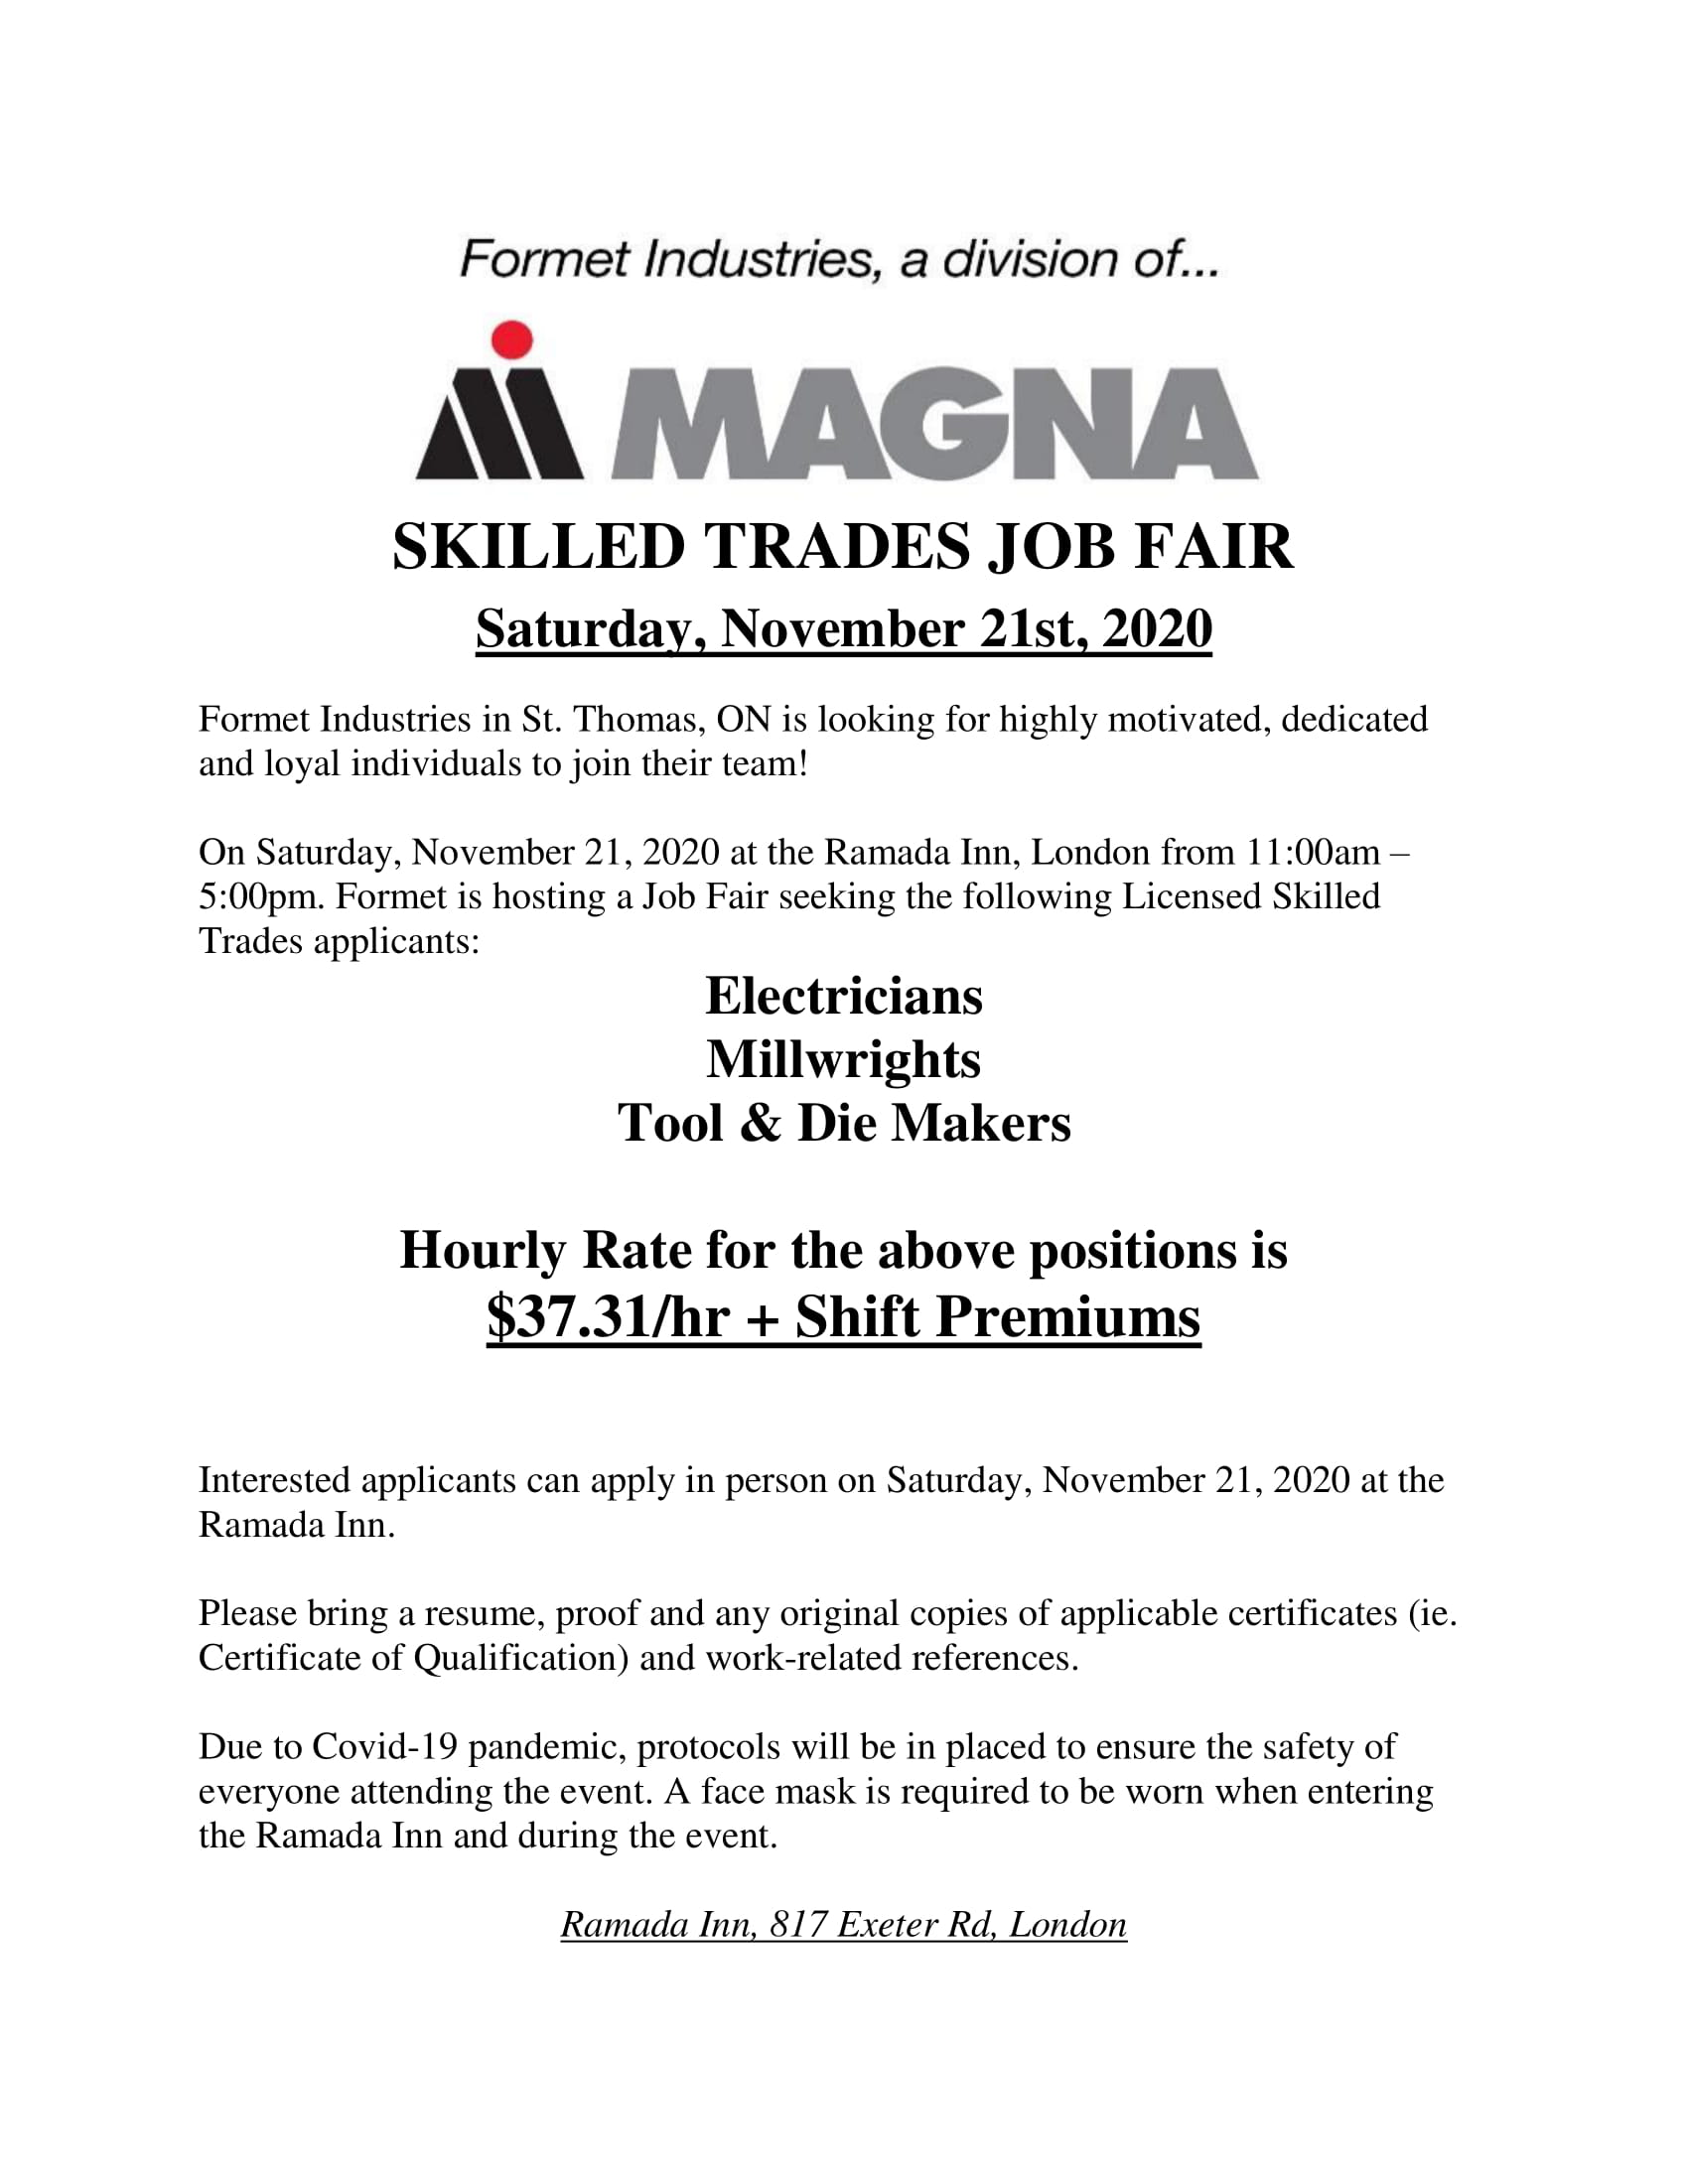 Formet Industries in St. Thomas is having a career fair in London ON at the Ramada Inn at 817 Exeter Road from 11 a.m. to 5 p.m.